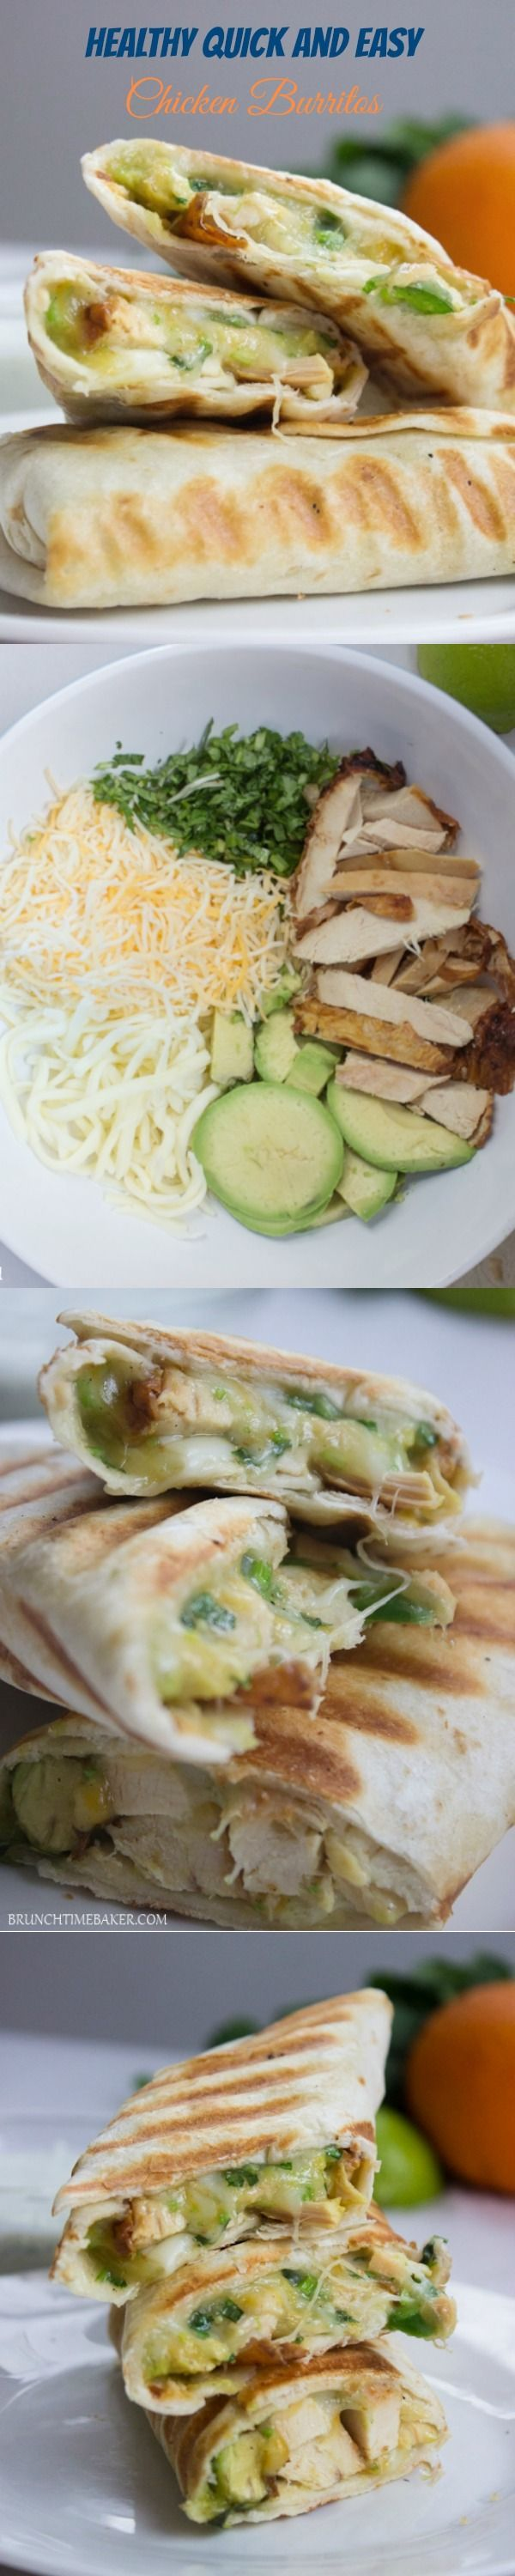 Chicken Avocado Burritos. Bomb.